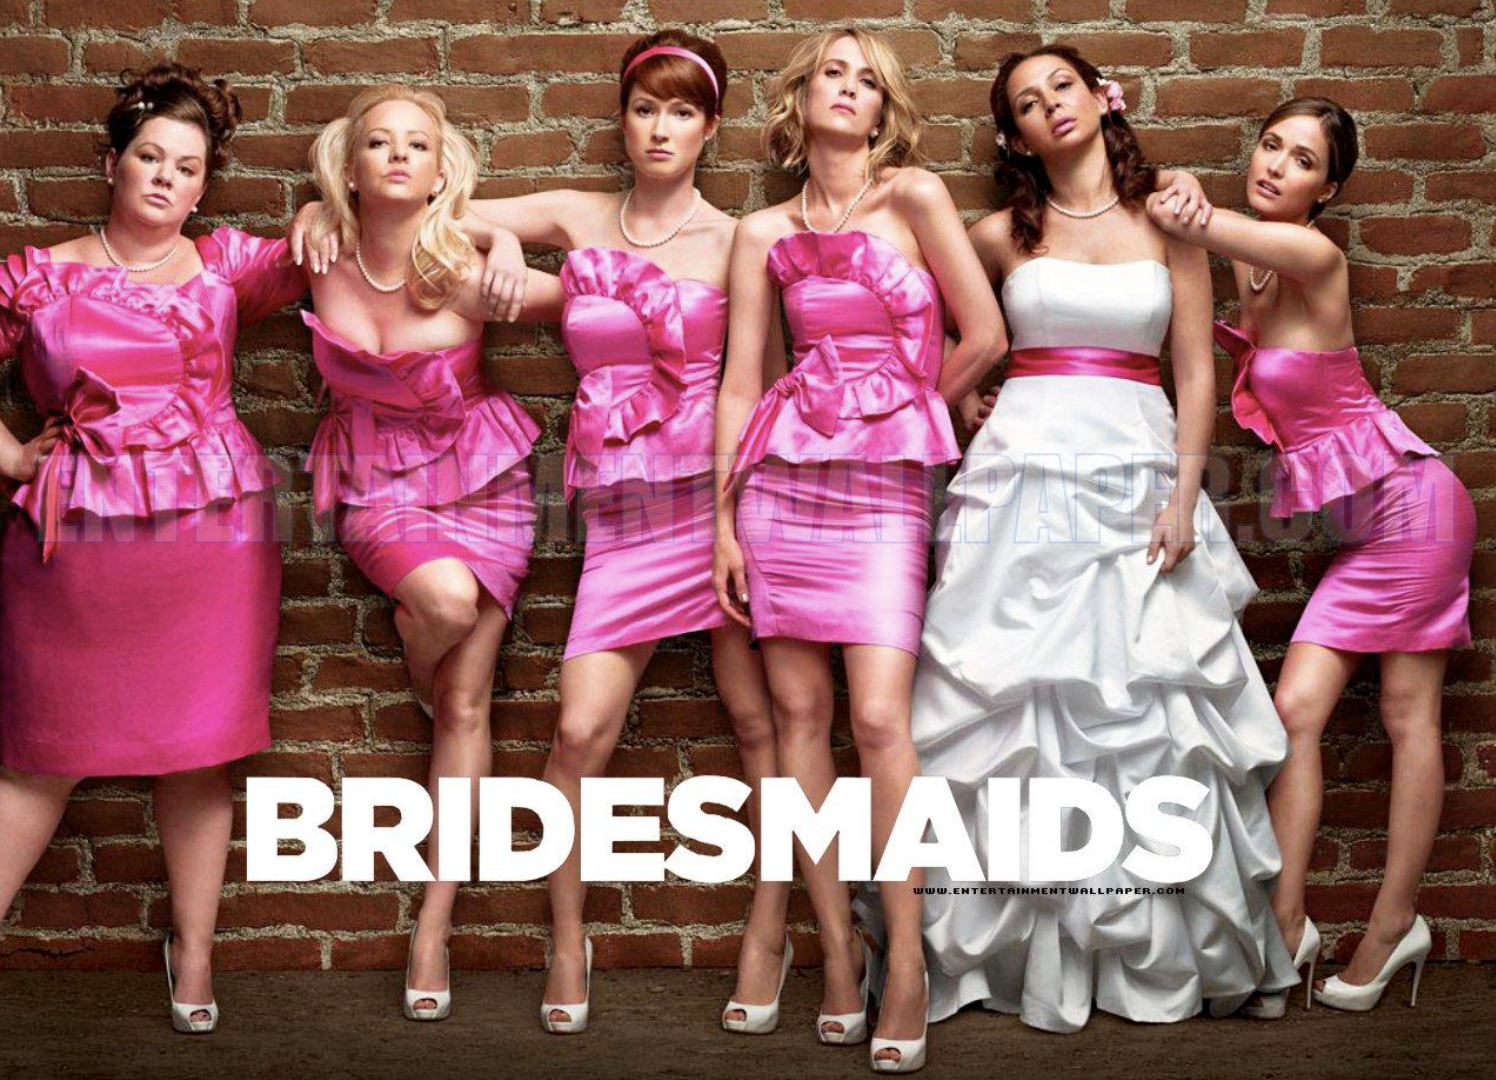 Galentine's Day : Bridesmaids : Corpus Christi Moms Blog